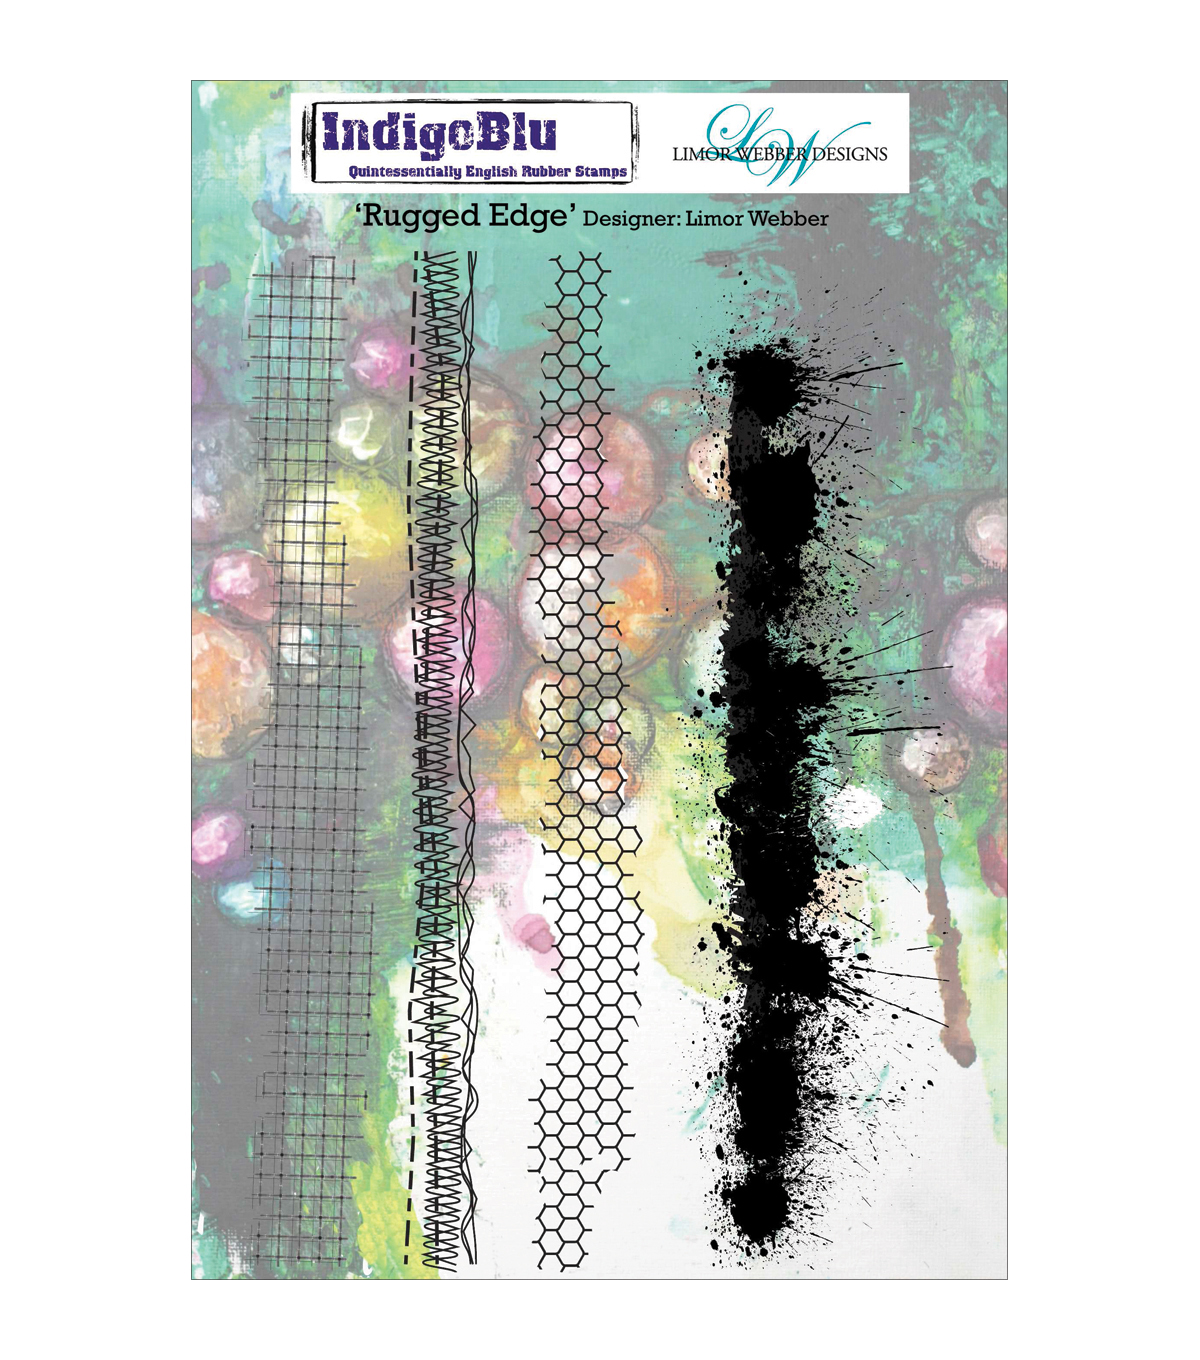 Indigoblu Rugged Edge Cling Mounted Stamp